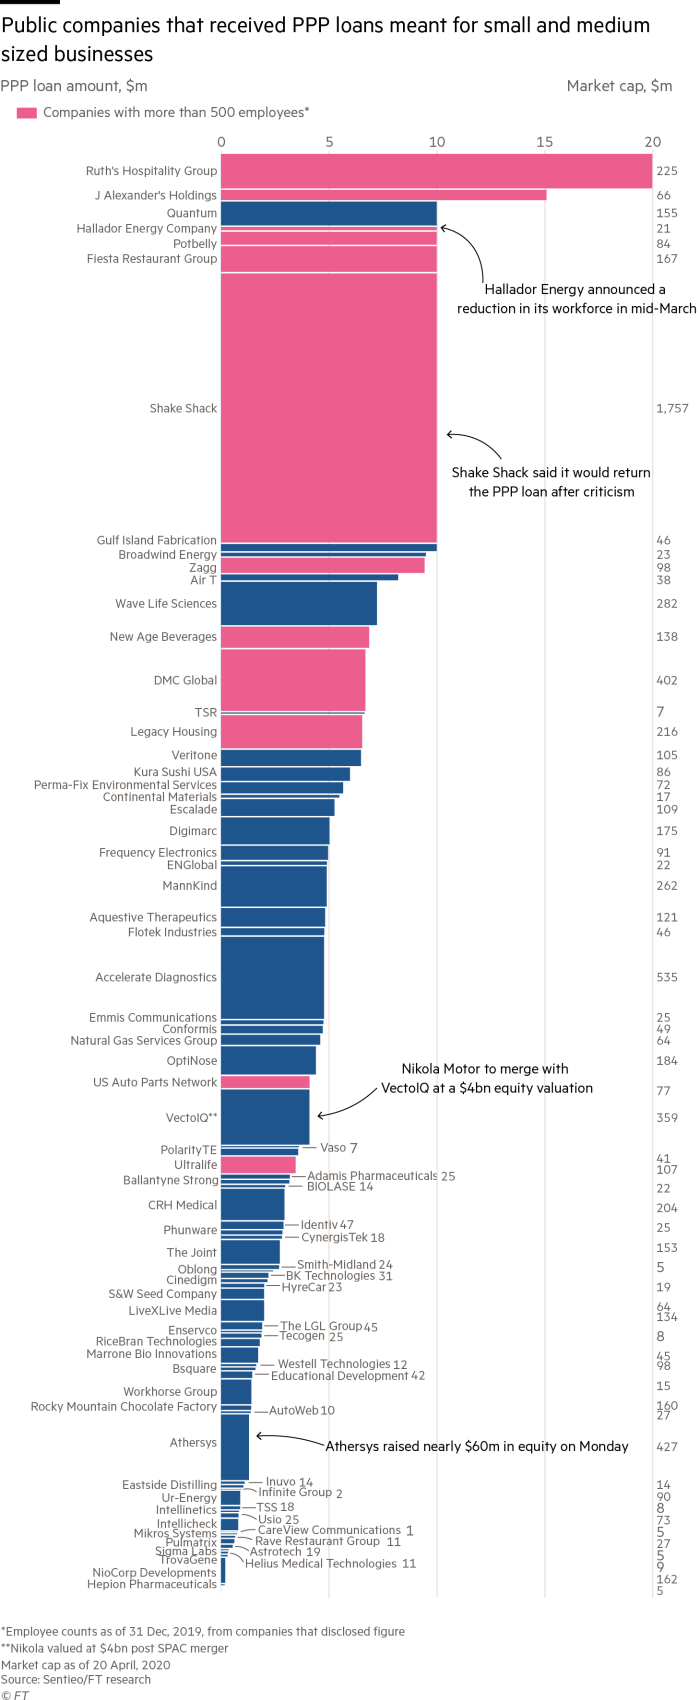 A treemap breaking down which public companies received PPP loans.